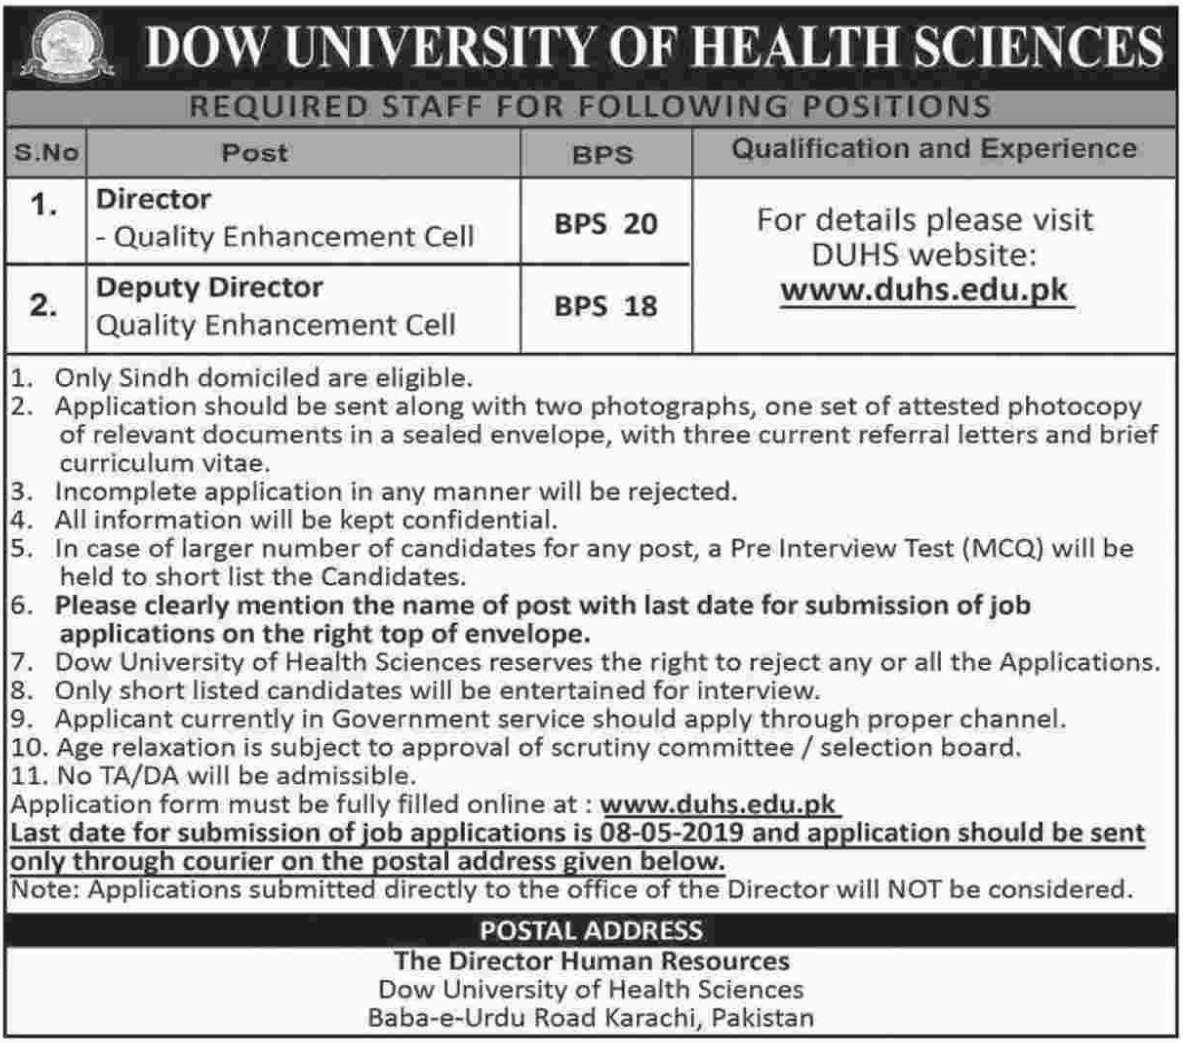 DOW University of Health Sciences DUHS Karachi Jobs 2019